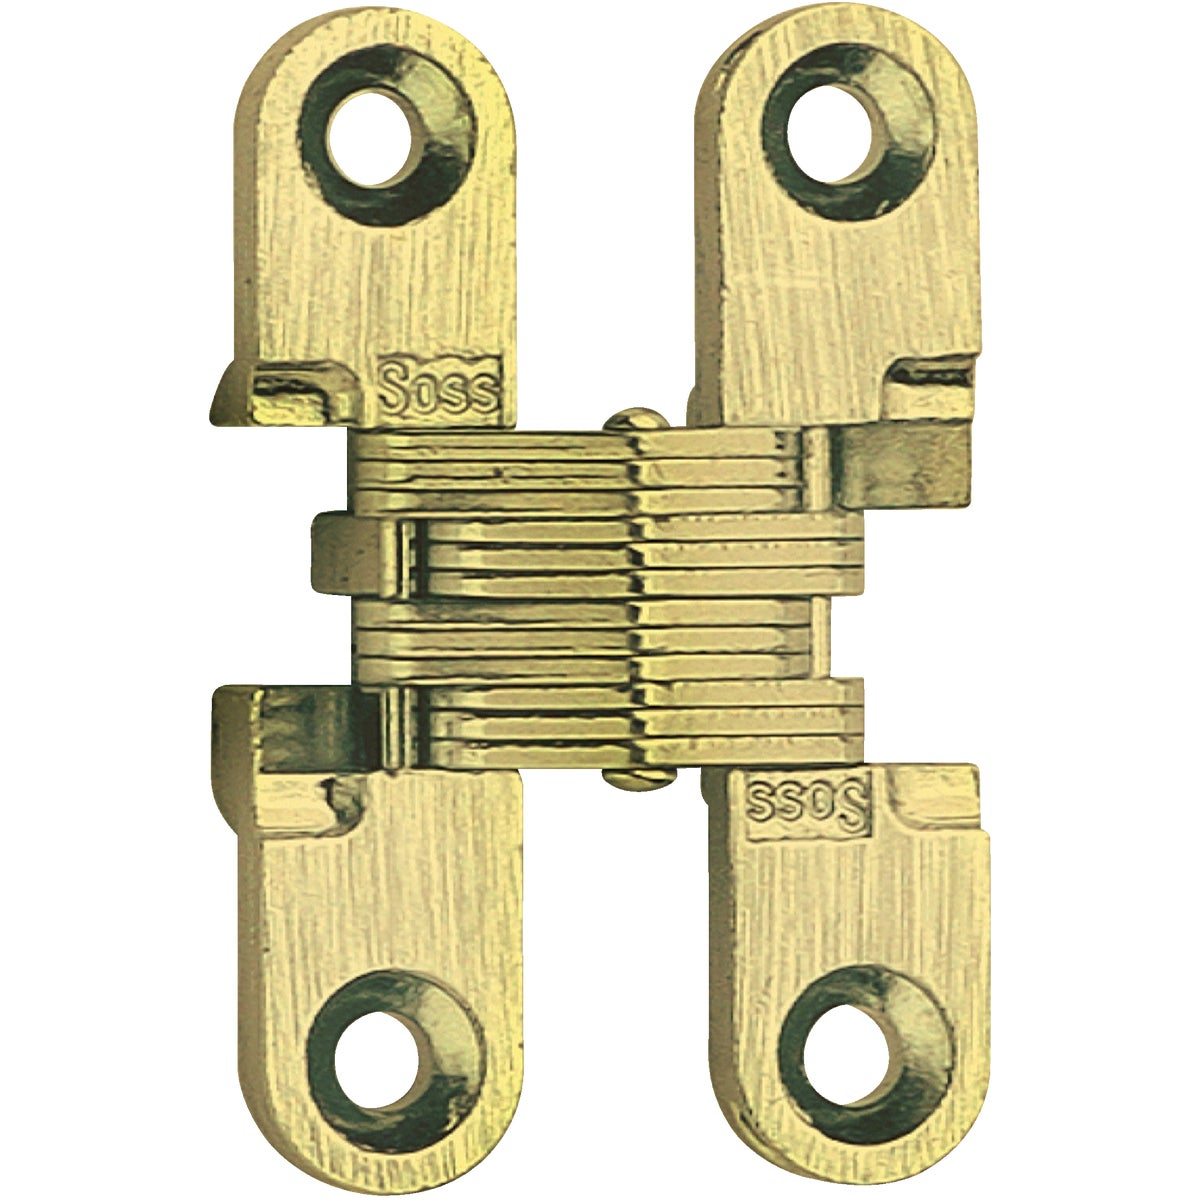 1/2X1-3/4 INVIS HINGE - 203CUS4 by Universal Ind Prod